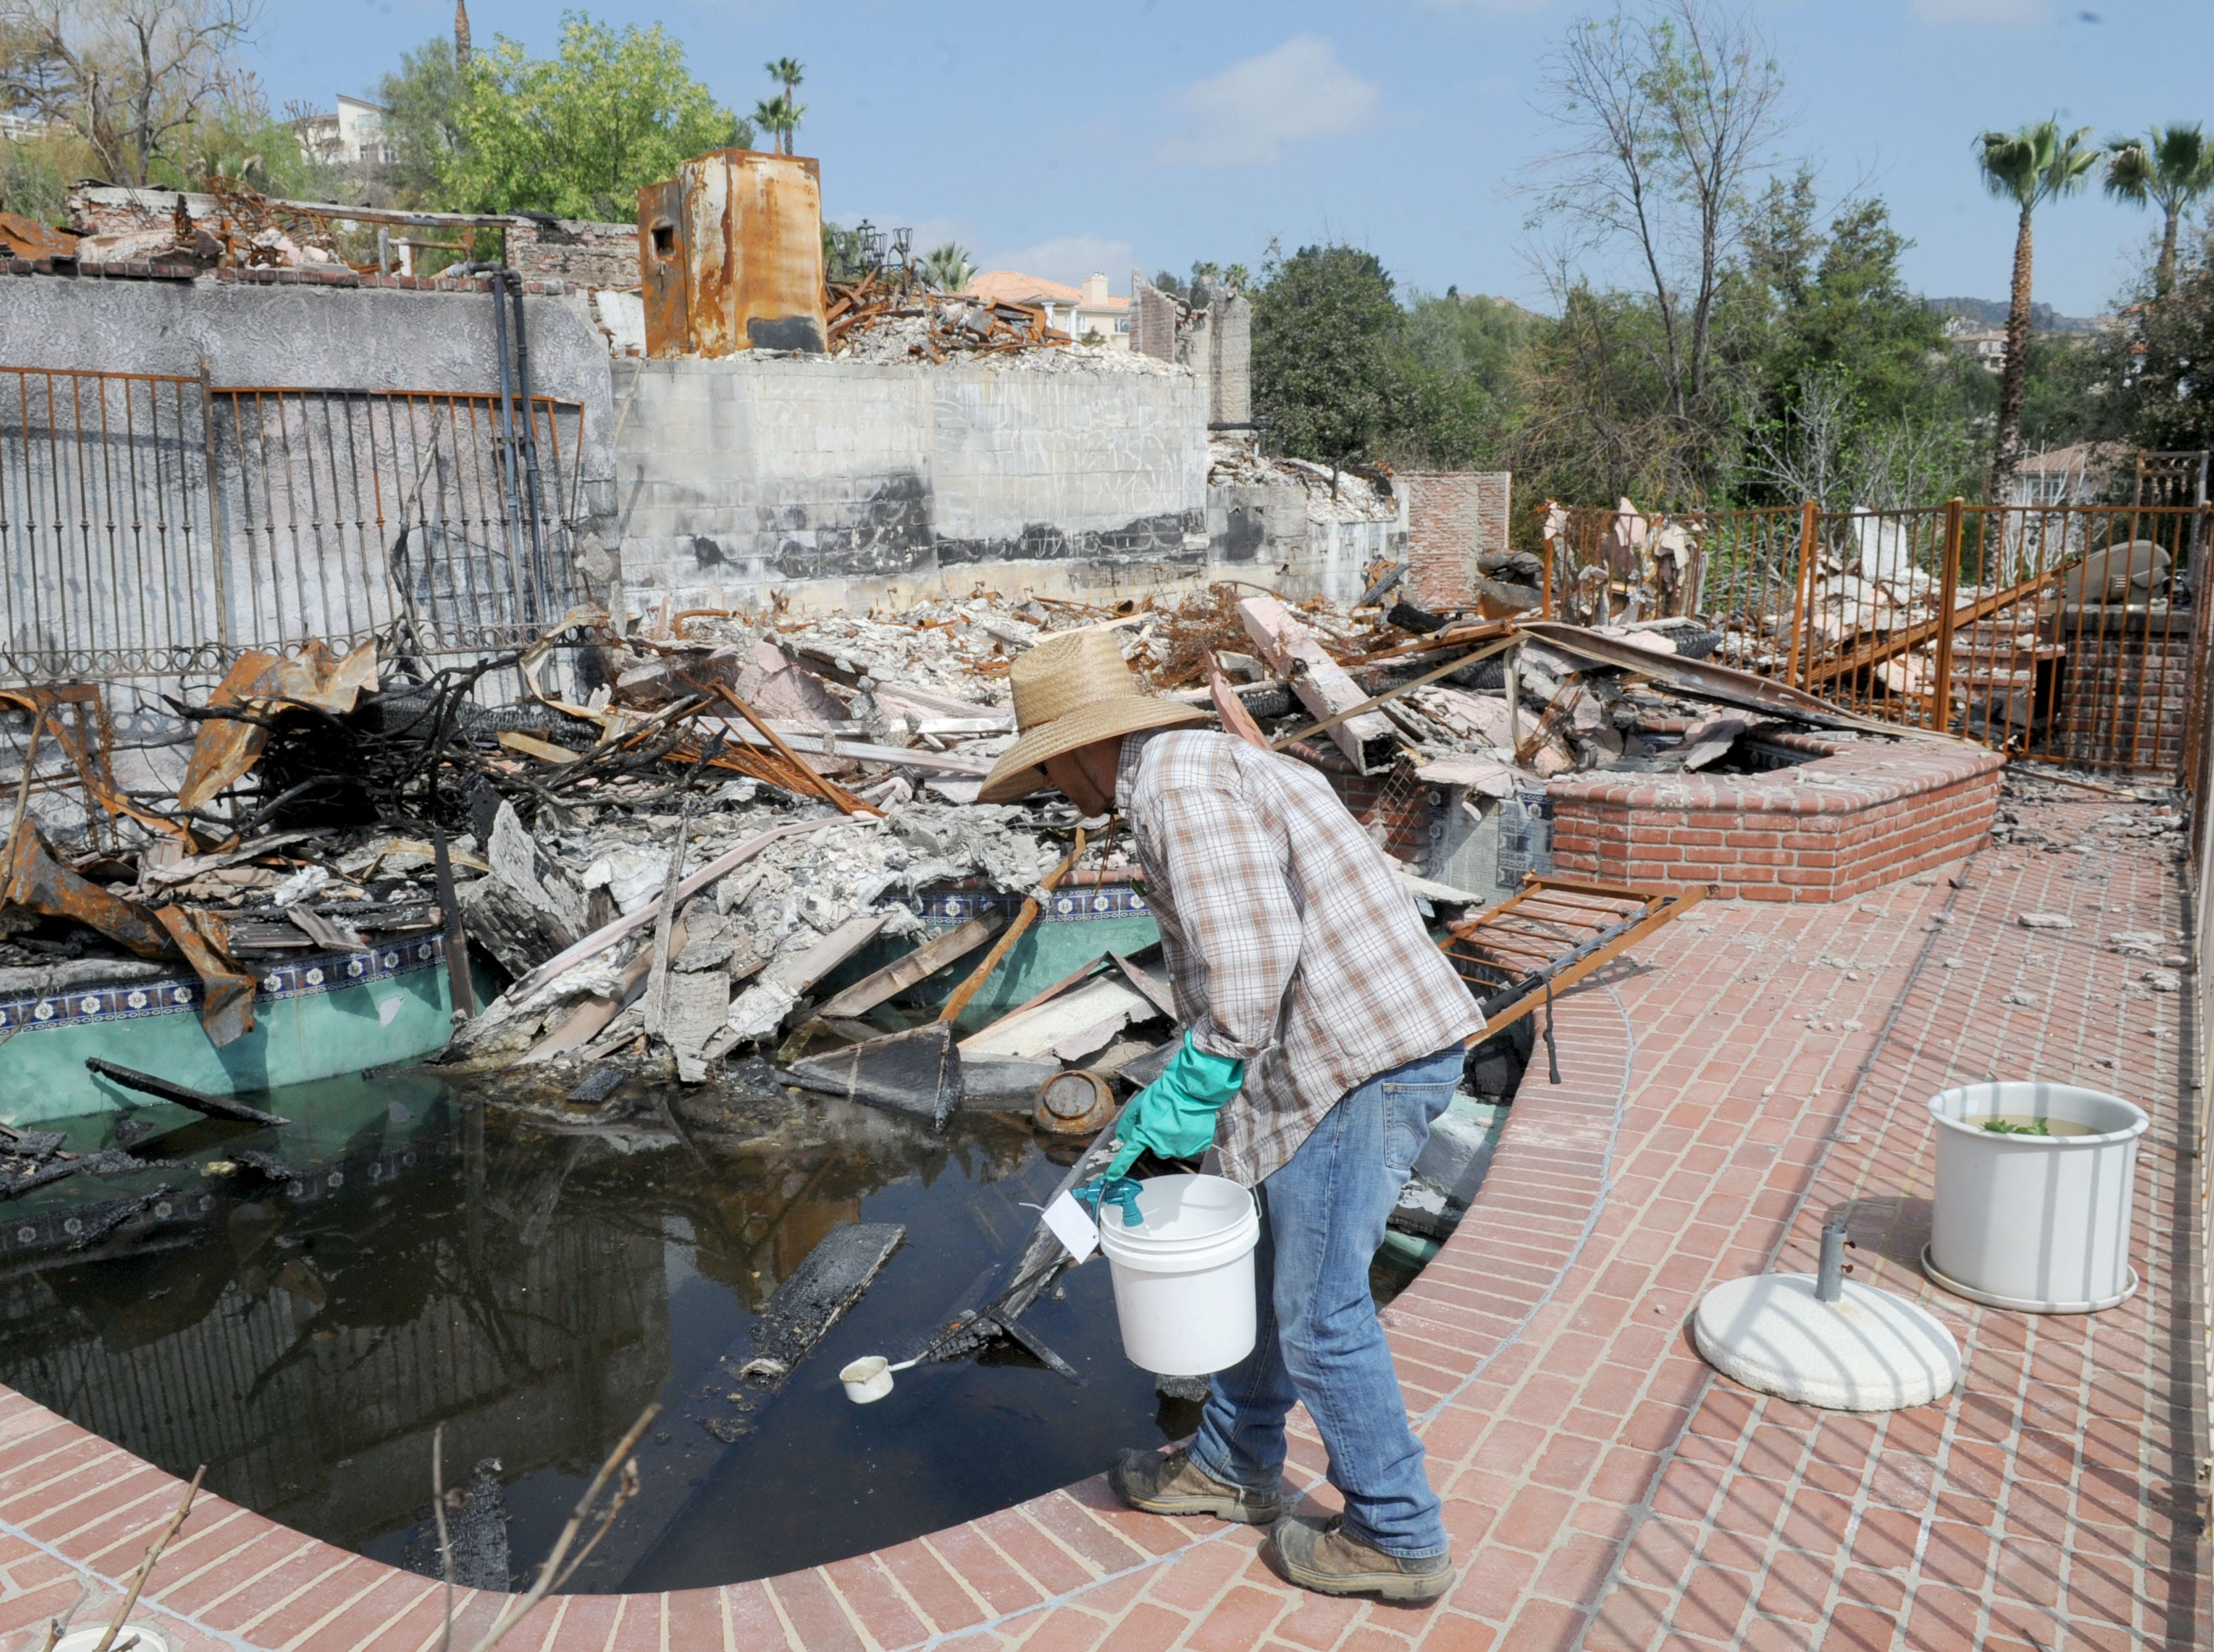 Swimming pools left behind in Woolsey Fire trigger mosquito control